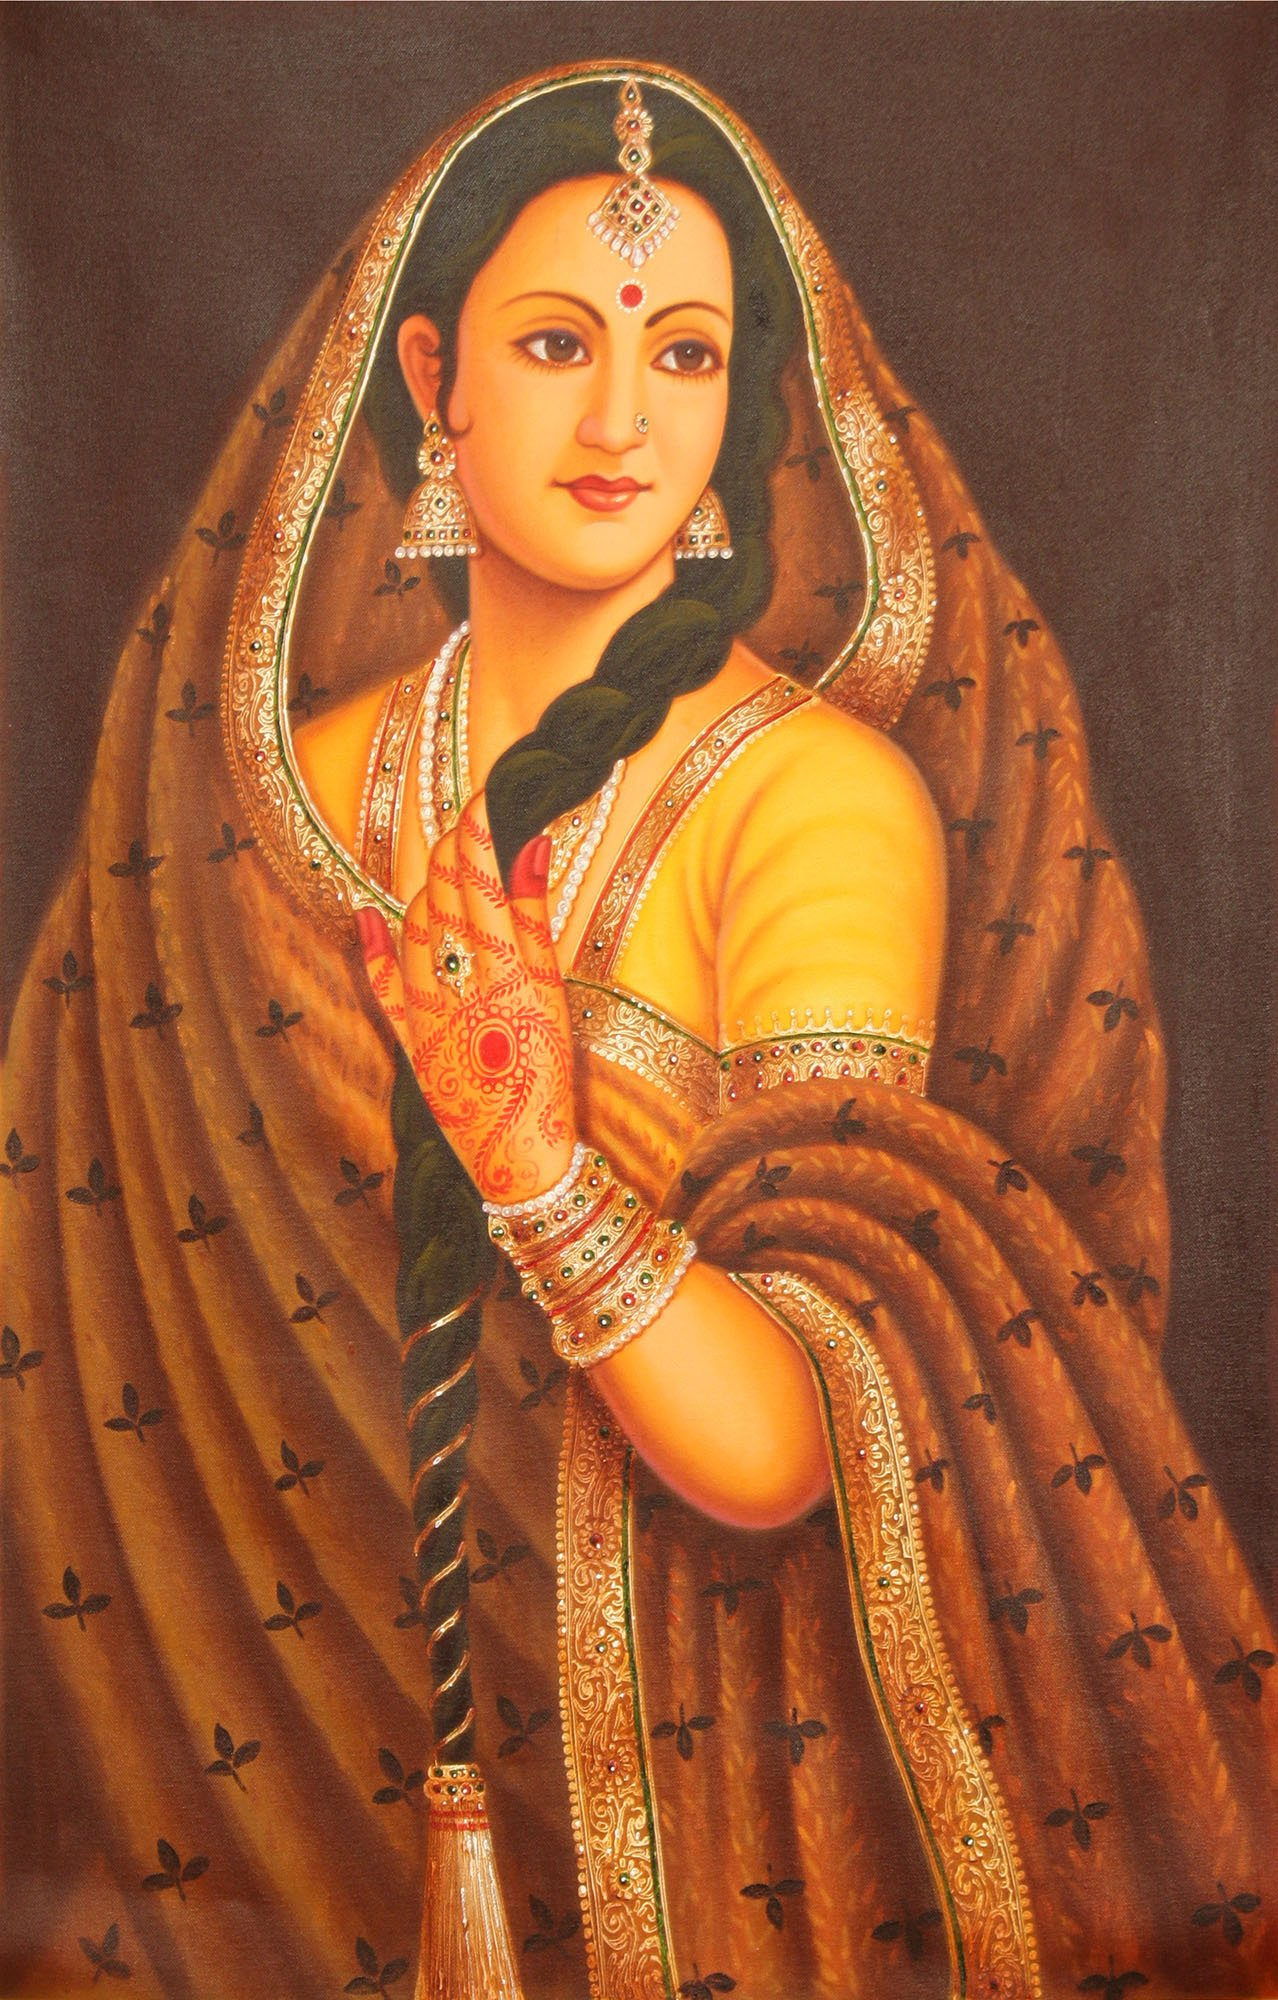 Portrait of a Lady from Rajasthan - Oil on Canvas